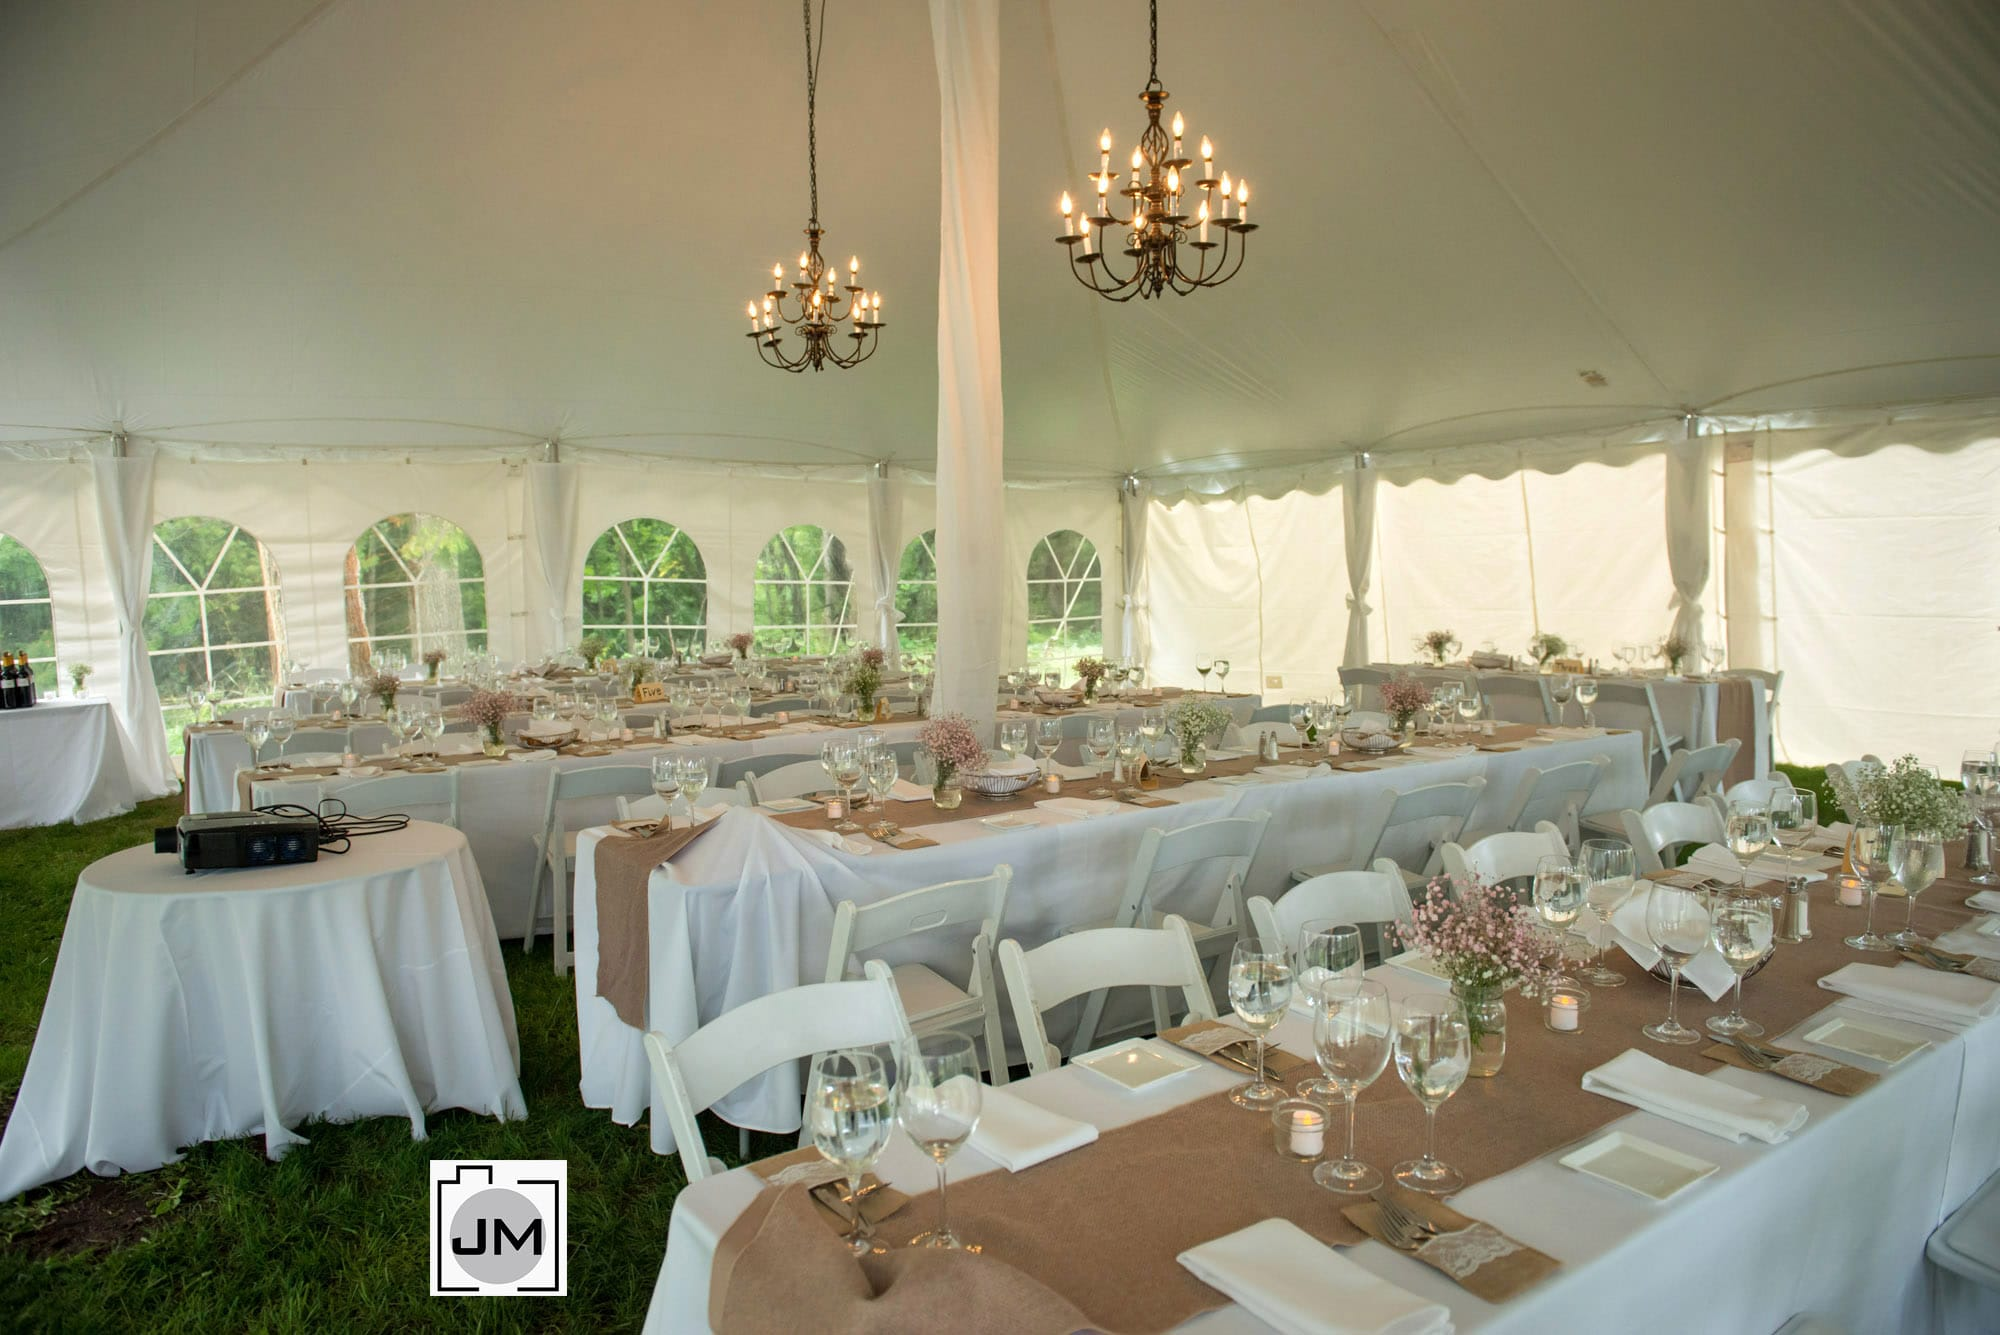 Sequel Inn Creemore Wedding